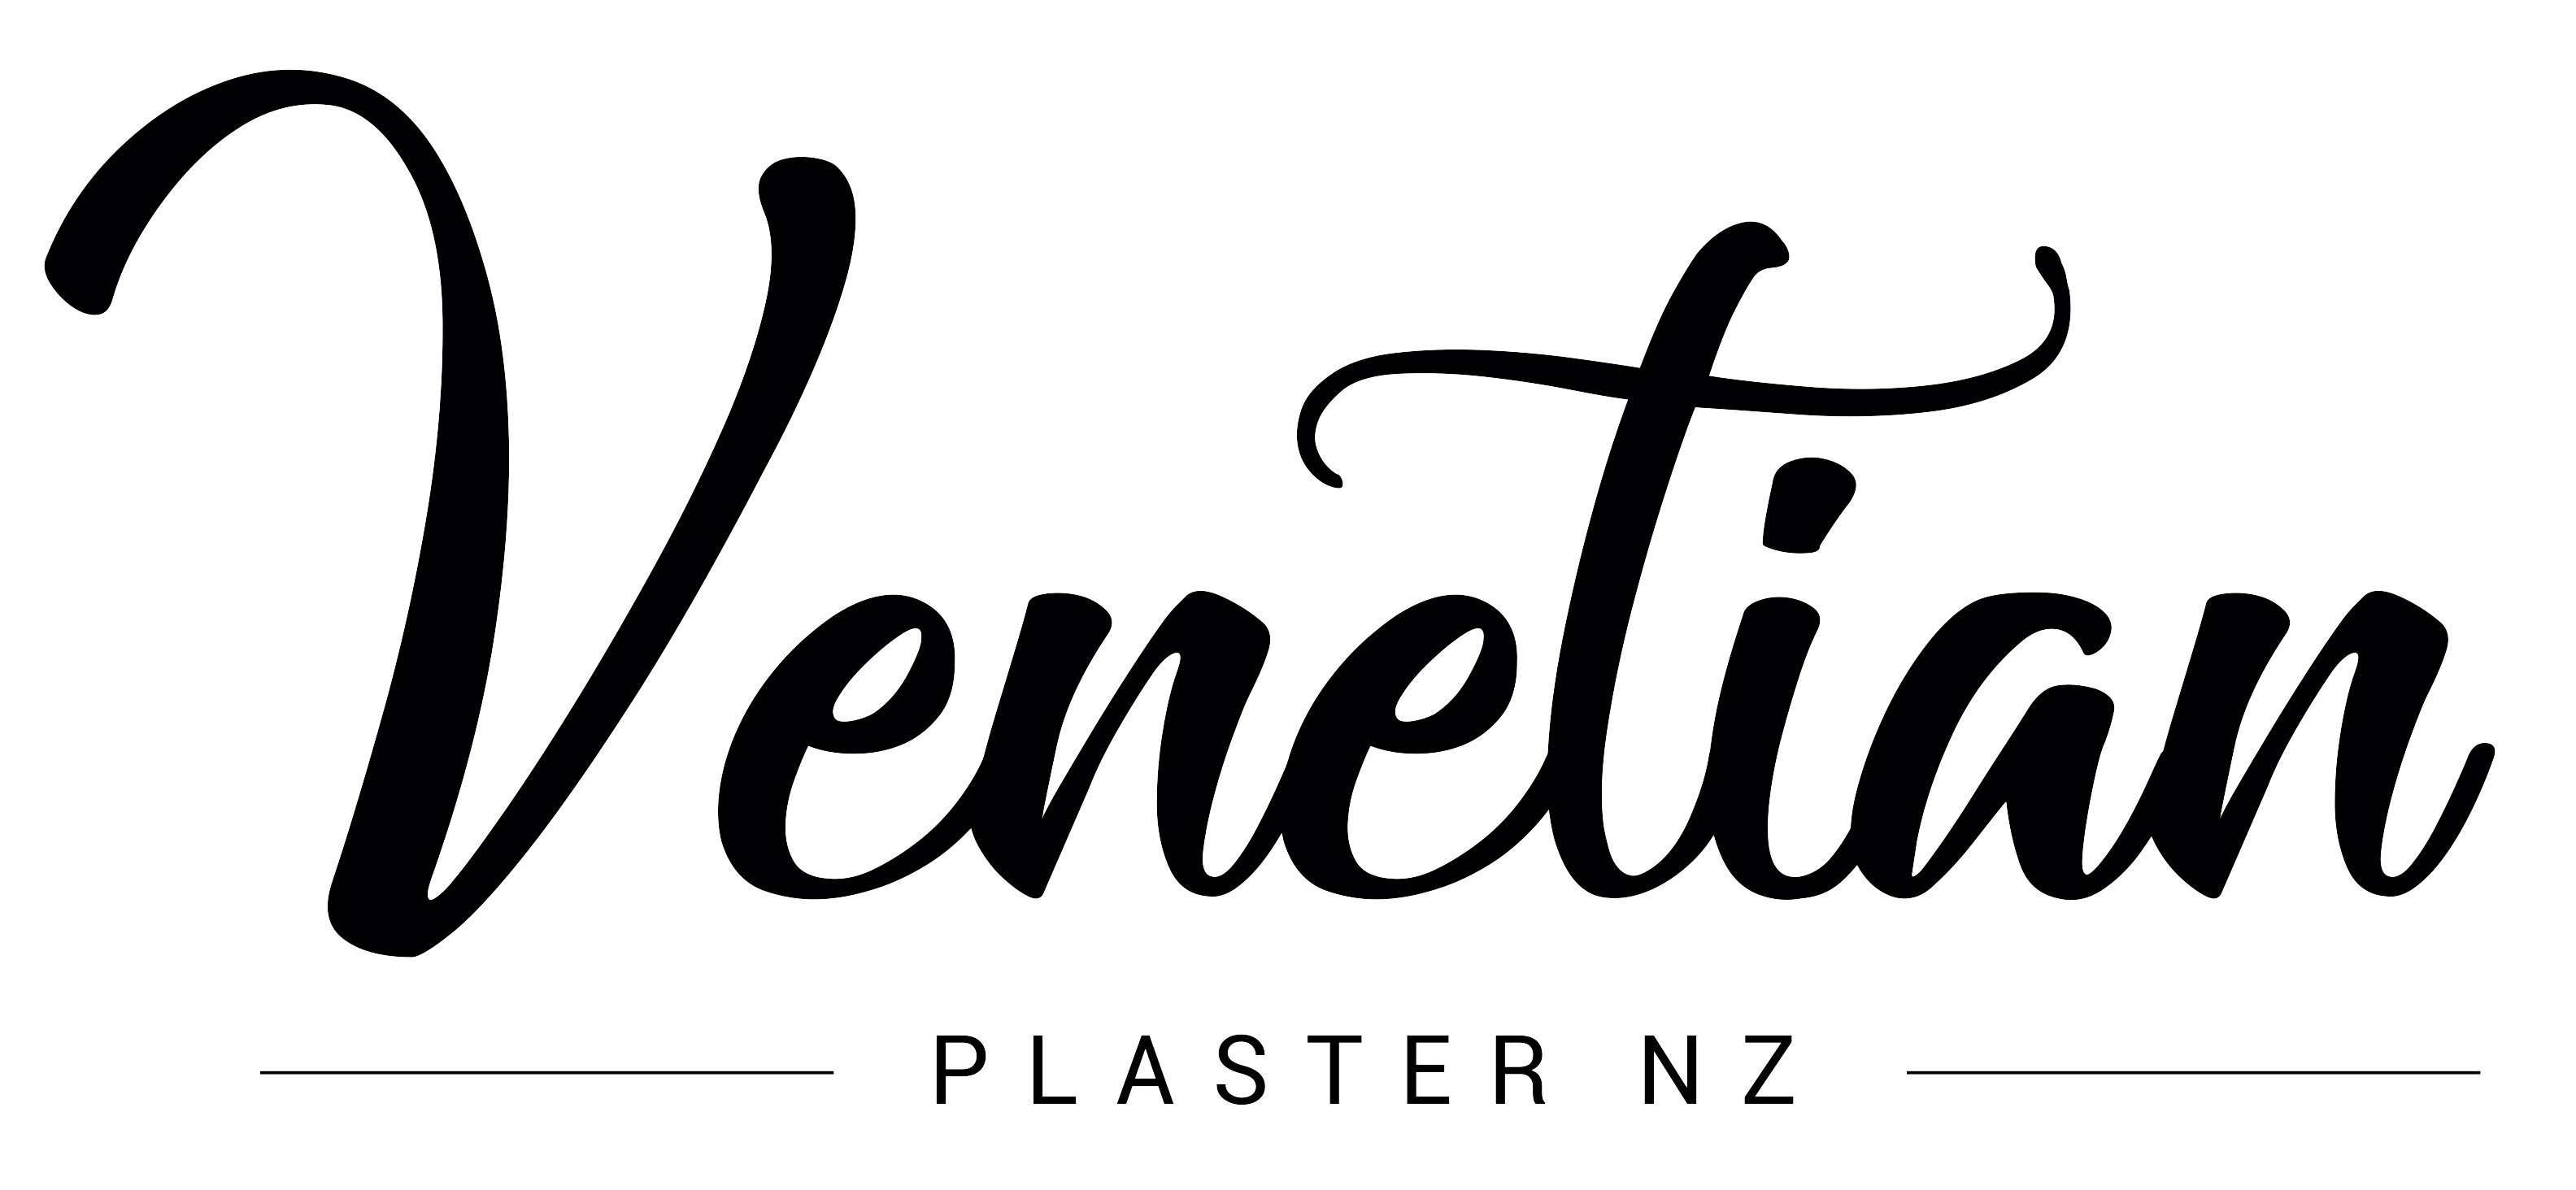 Venetian Plaster Shop NZ